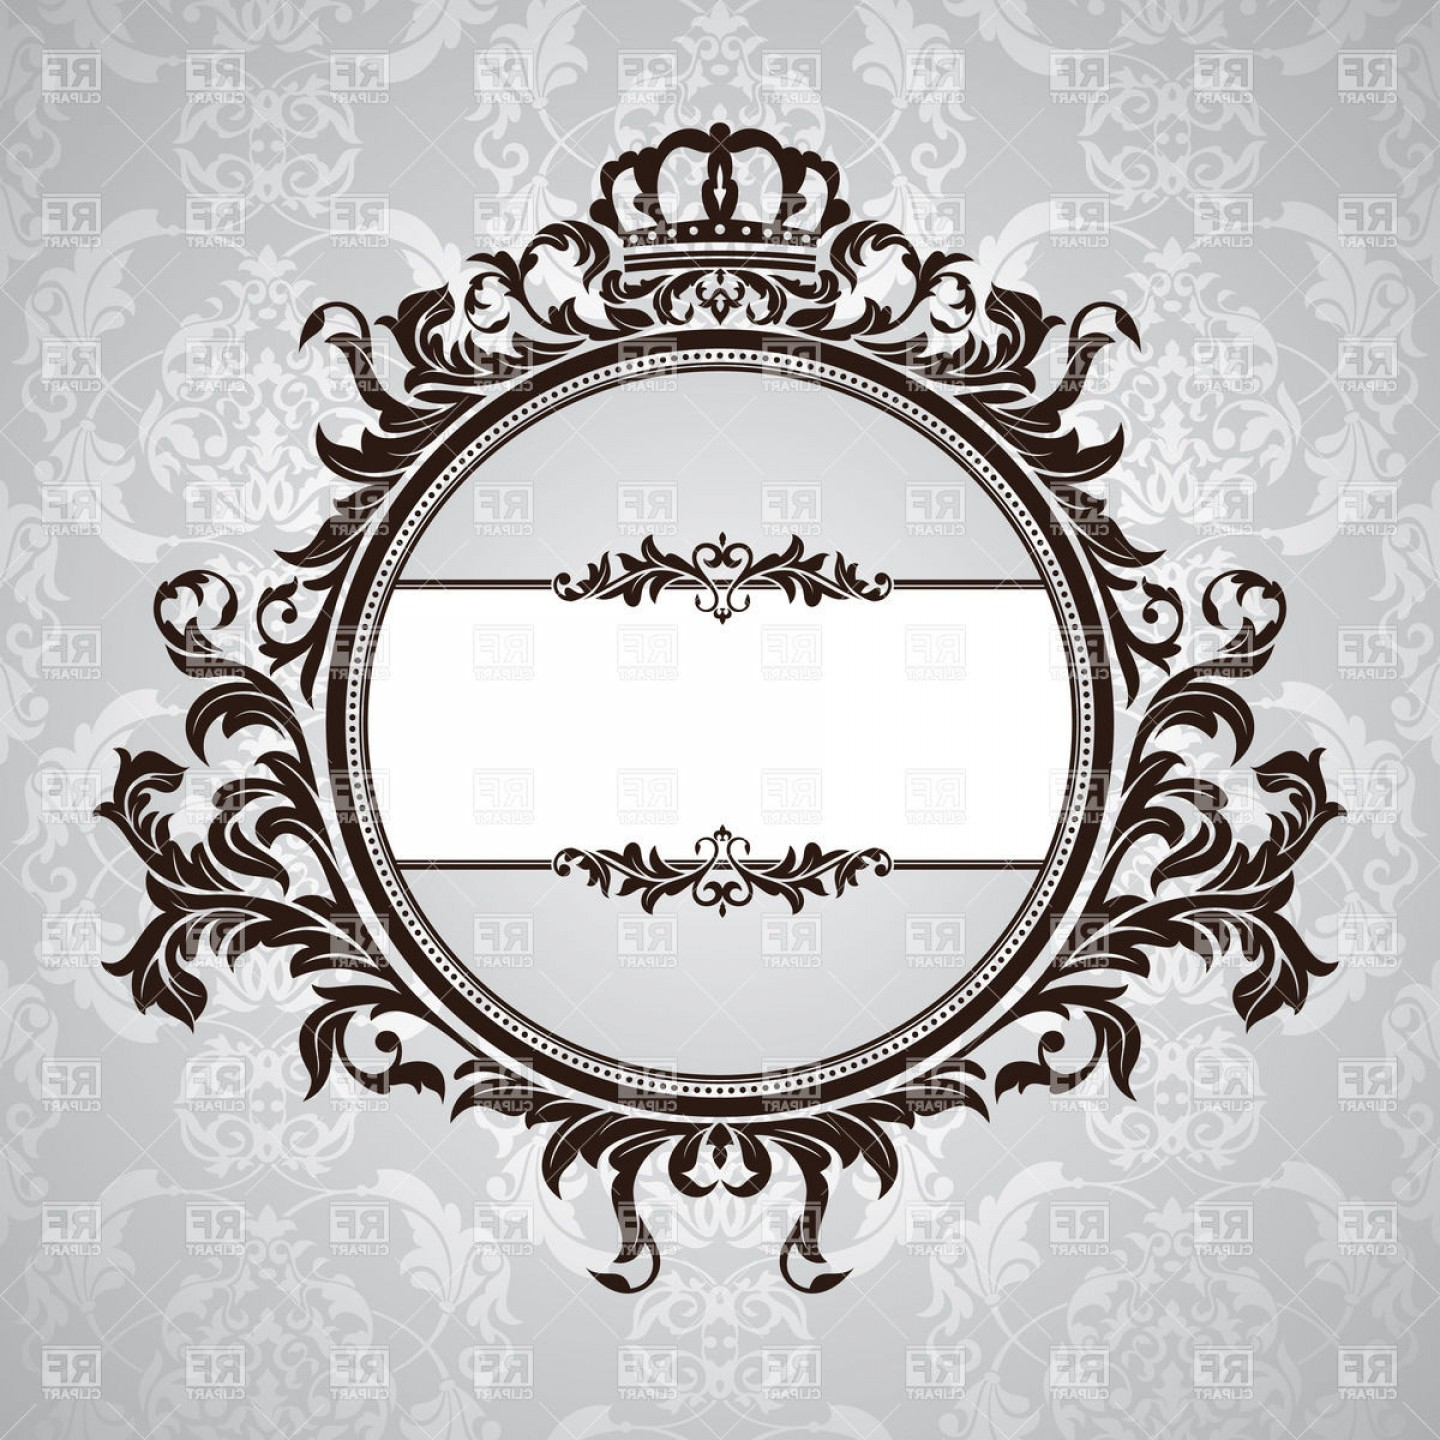 Free EPS Vector Art: Royal Retro Frame With Vintage Floral Ornament With Crown Vector Clipart